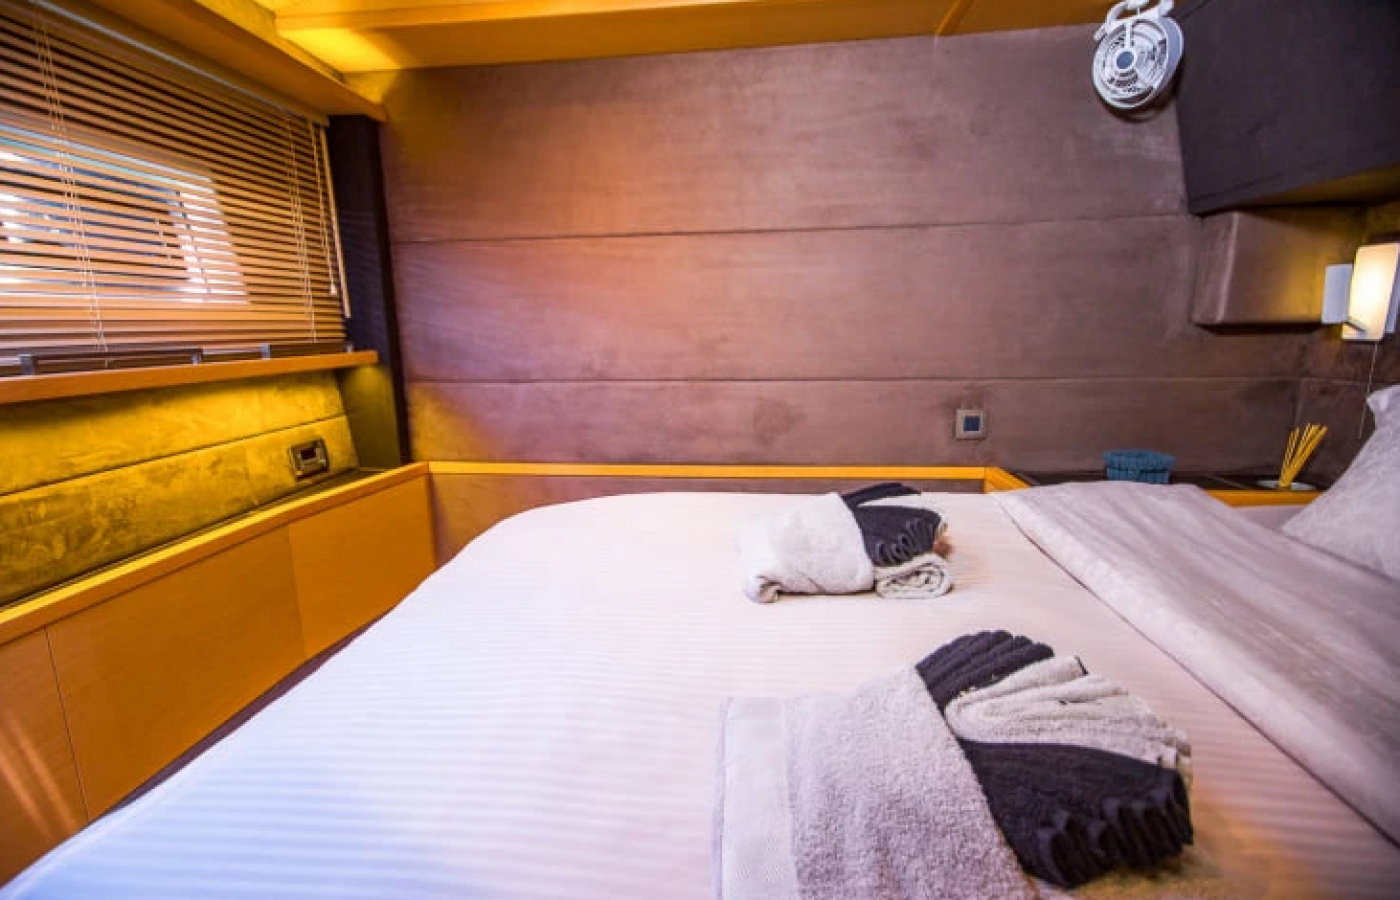 White and grey linen inside the cabins